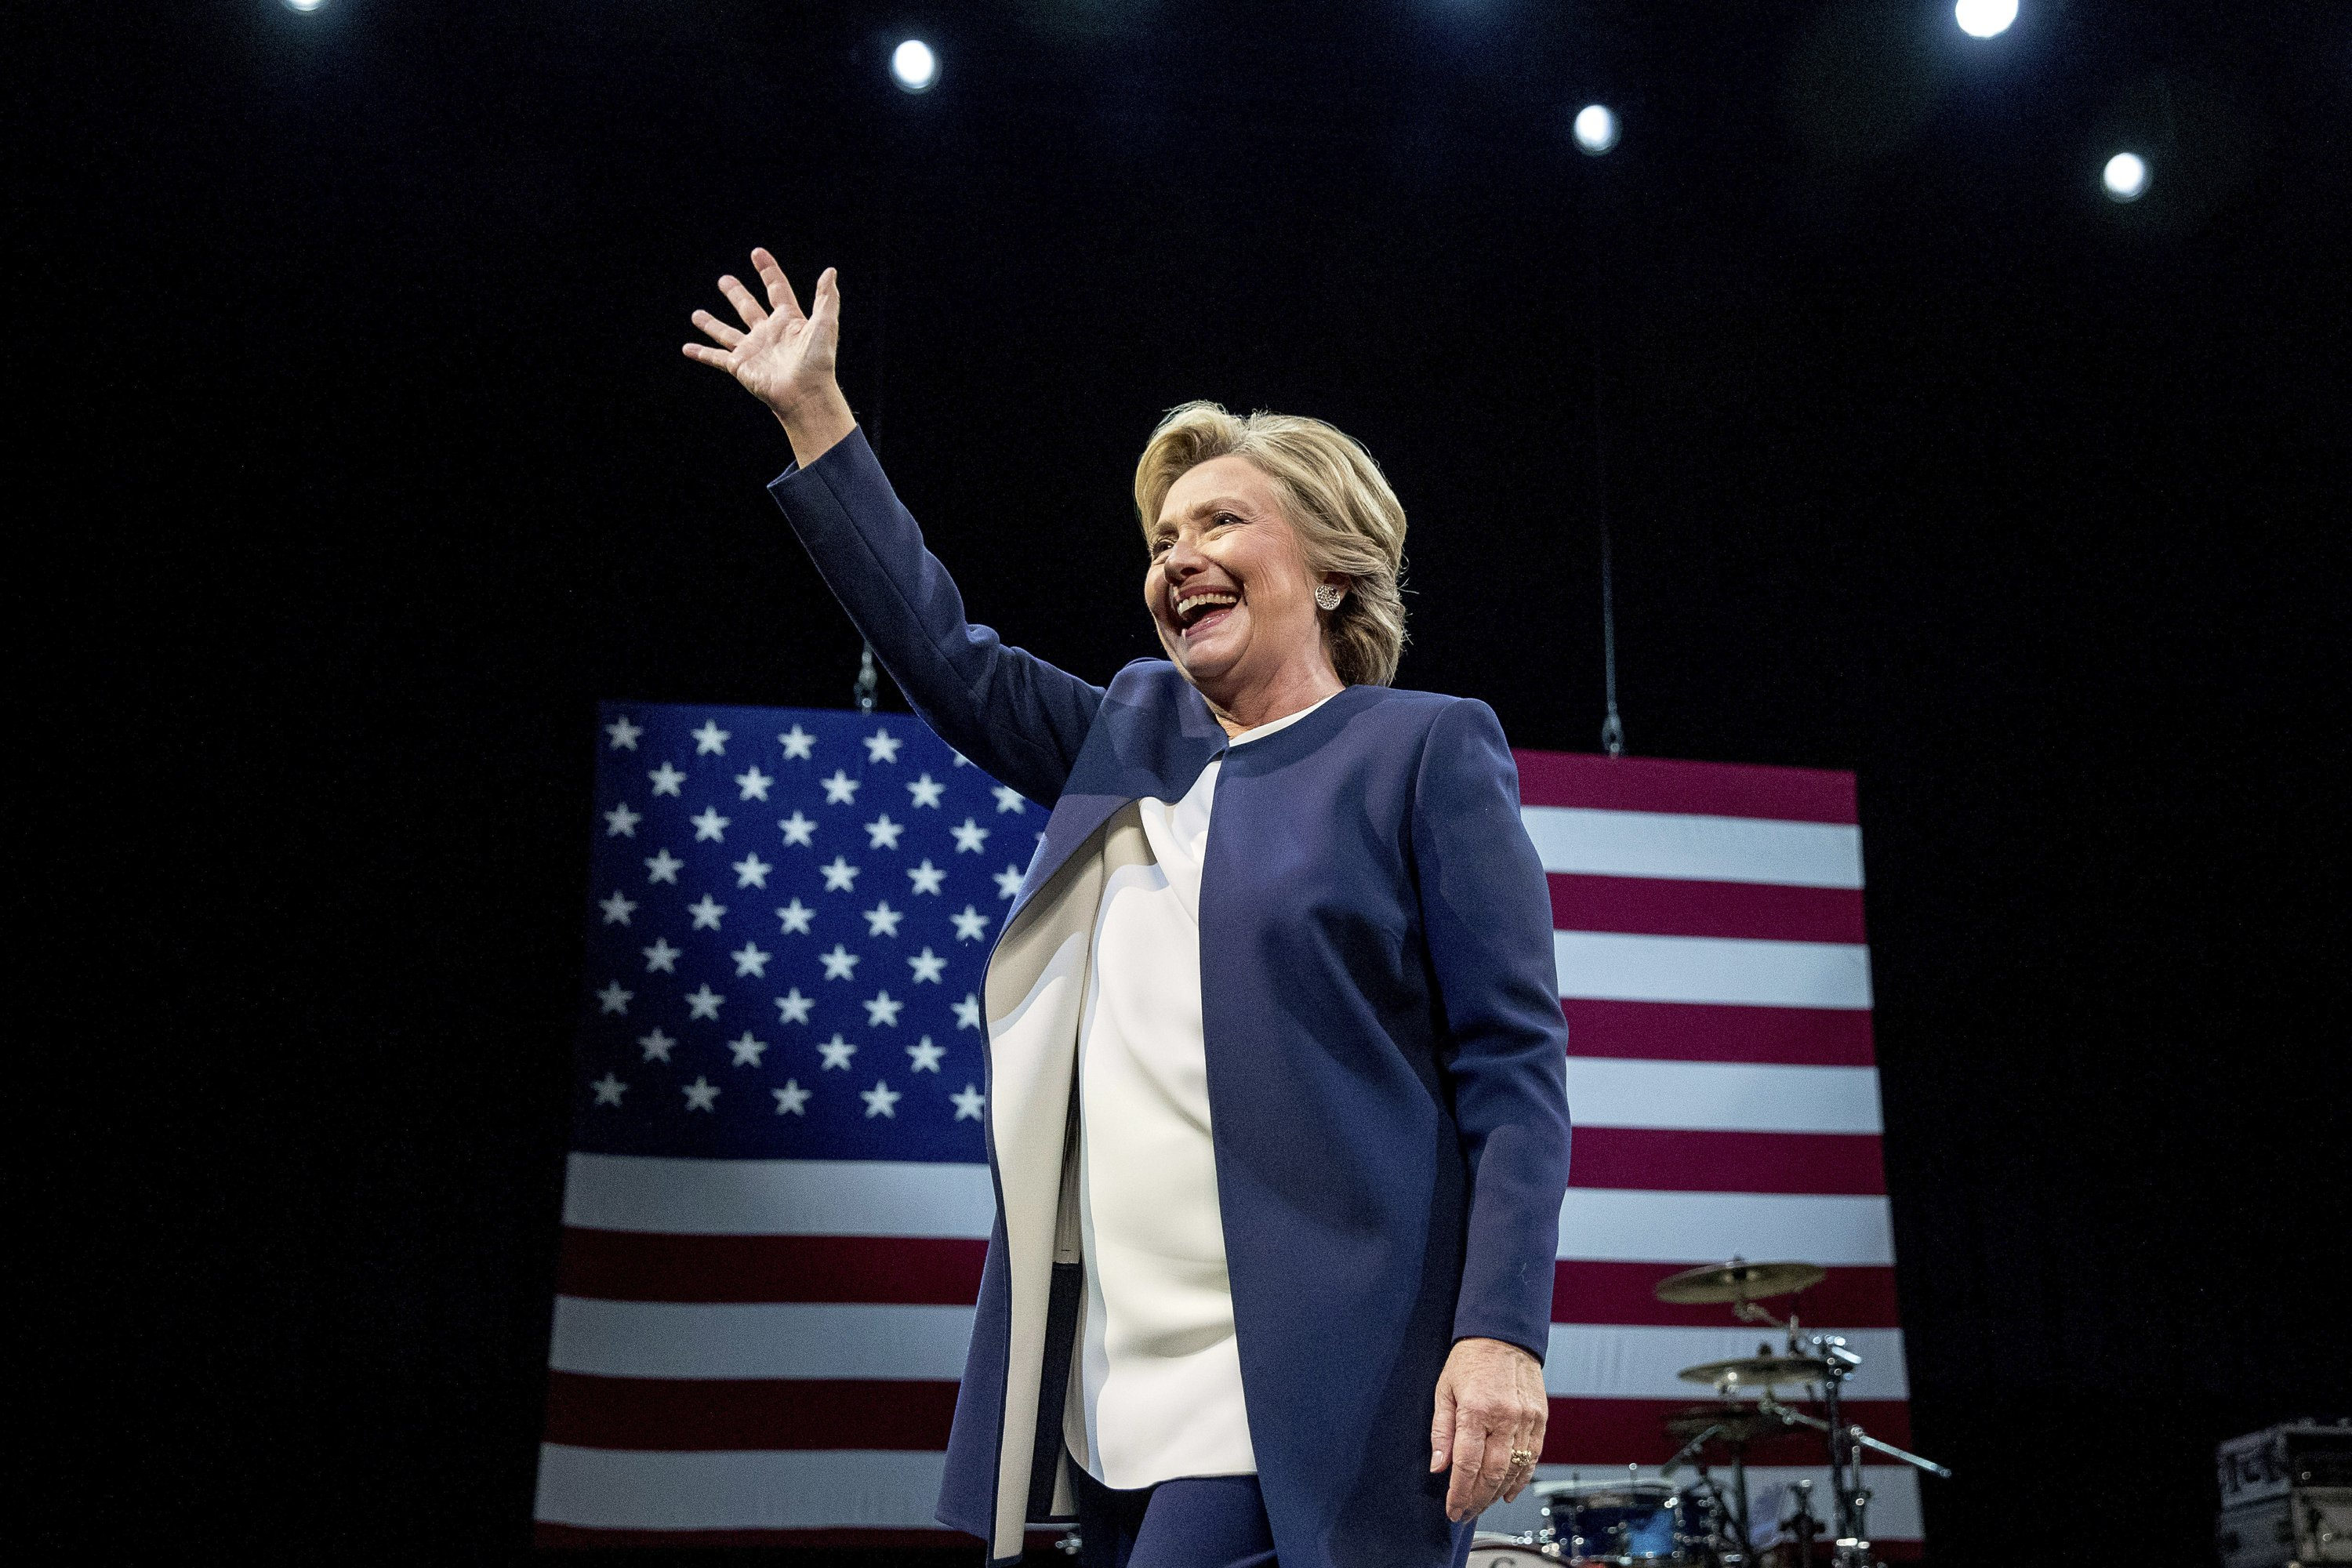 Email: Clinton campaign sought to cancel Wall Street speech